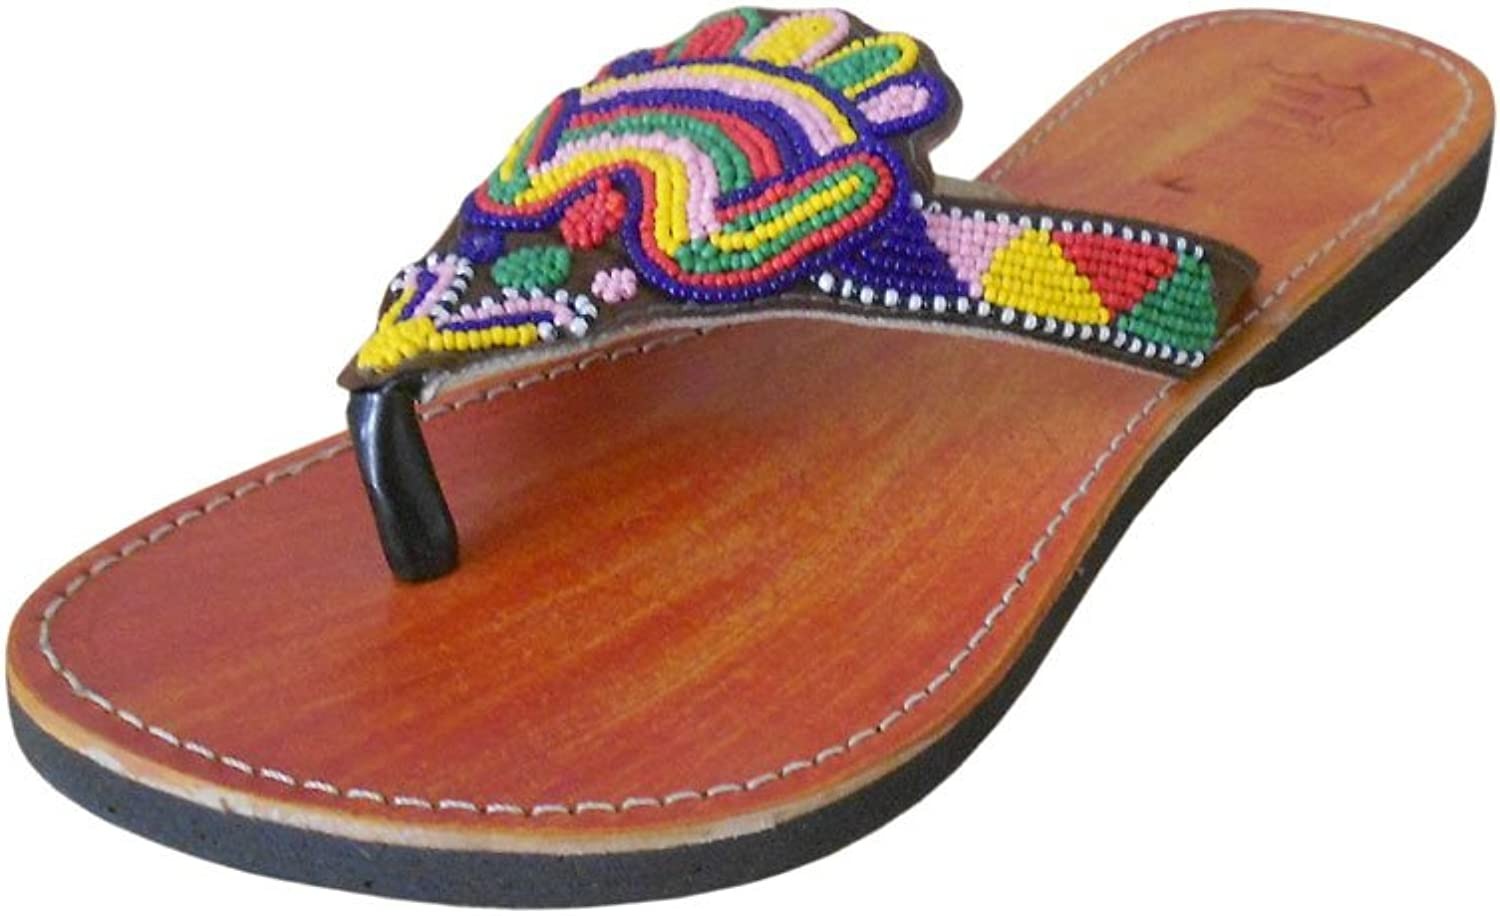 Kalra Creations Women's Traditional Indian Slippers shoes Leather with Sequence Work Ethnic Flats